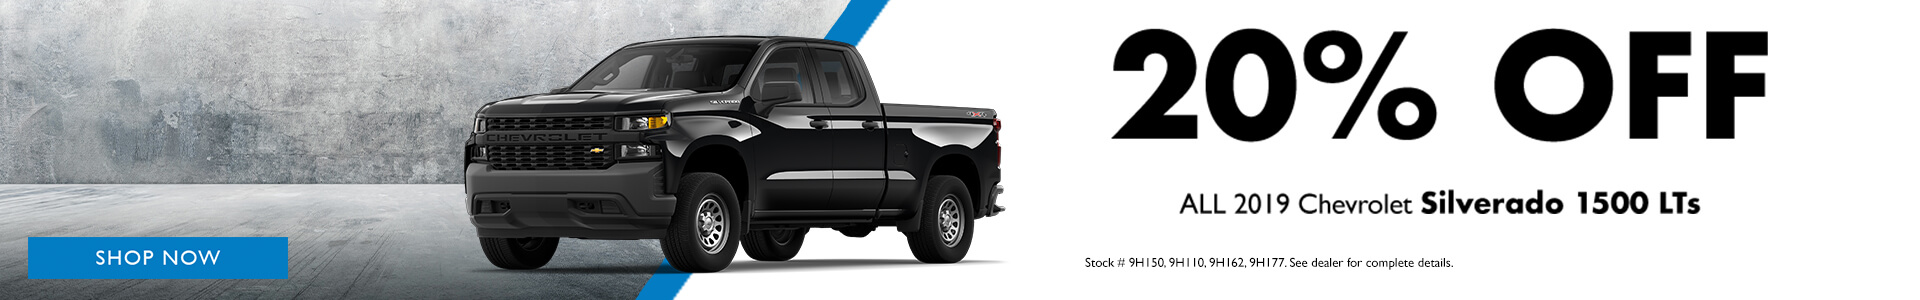 Chevrolet Silverado 1500 LT 20% OFF MSRP